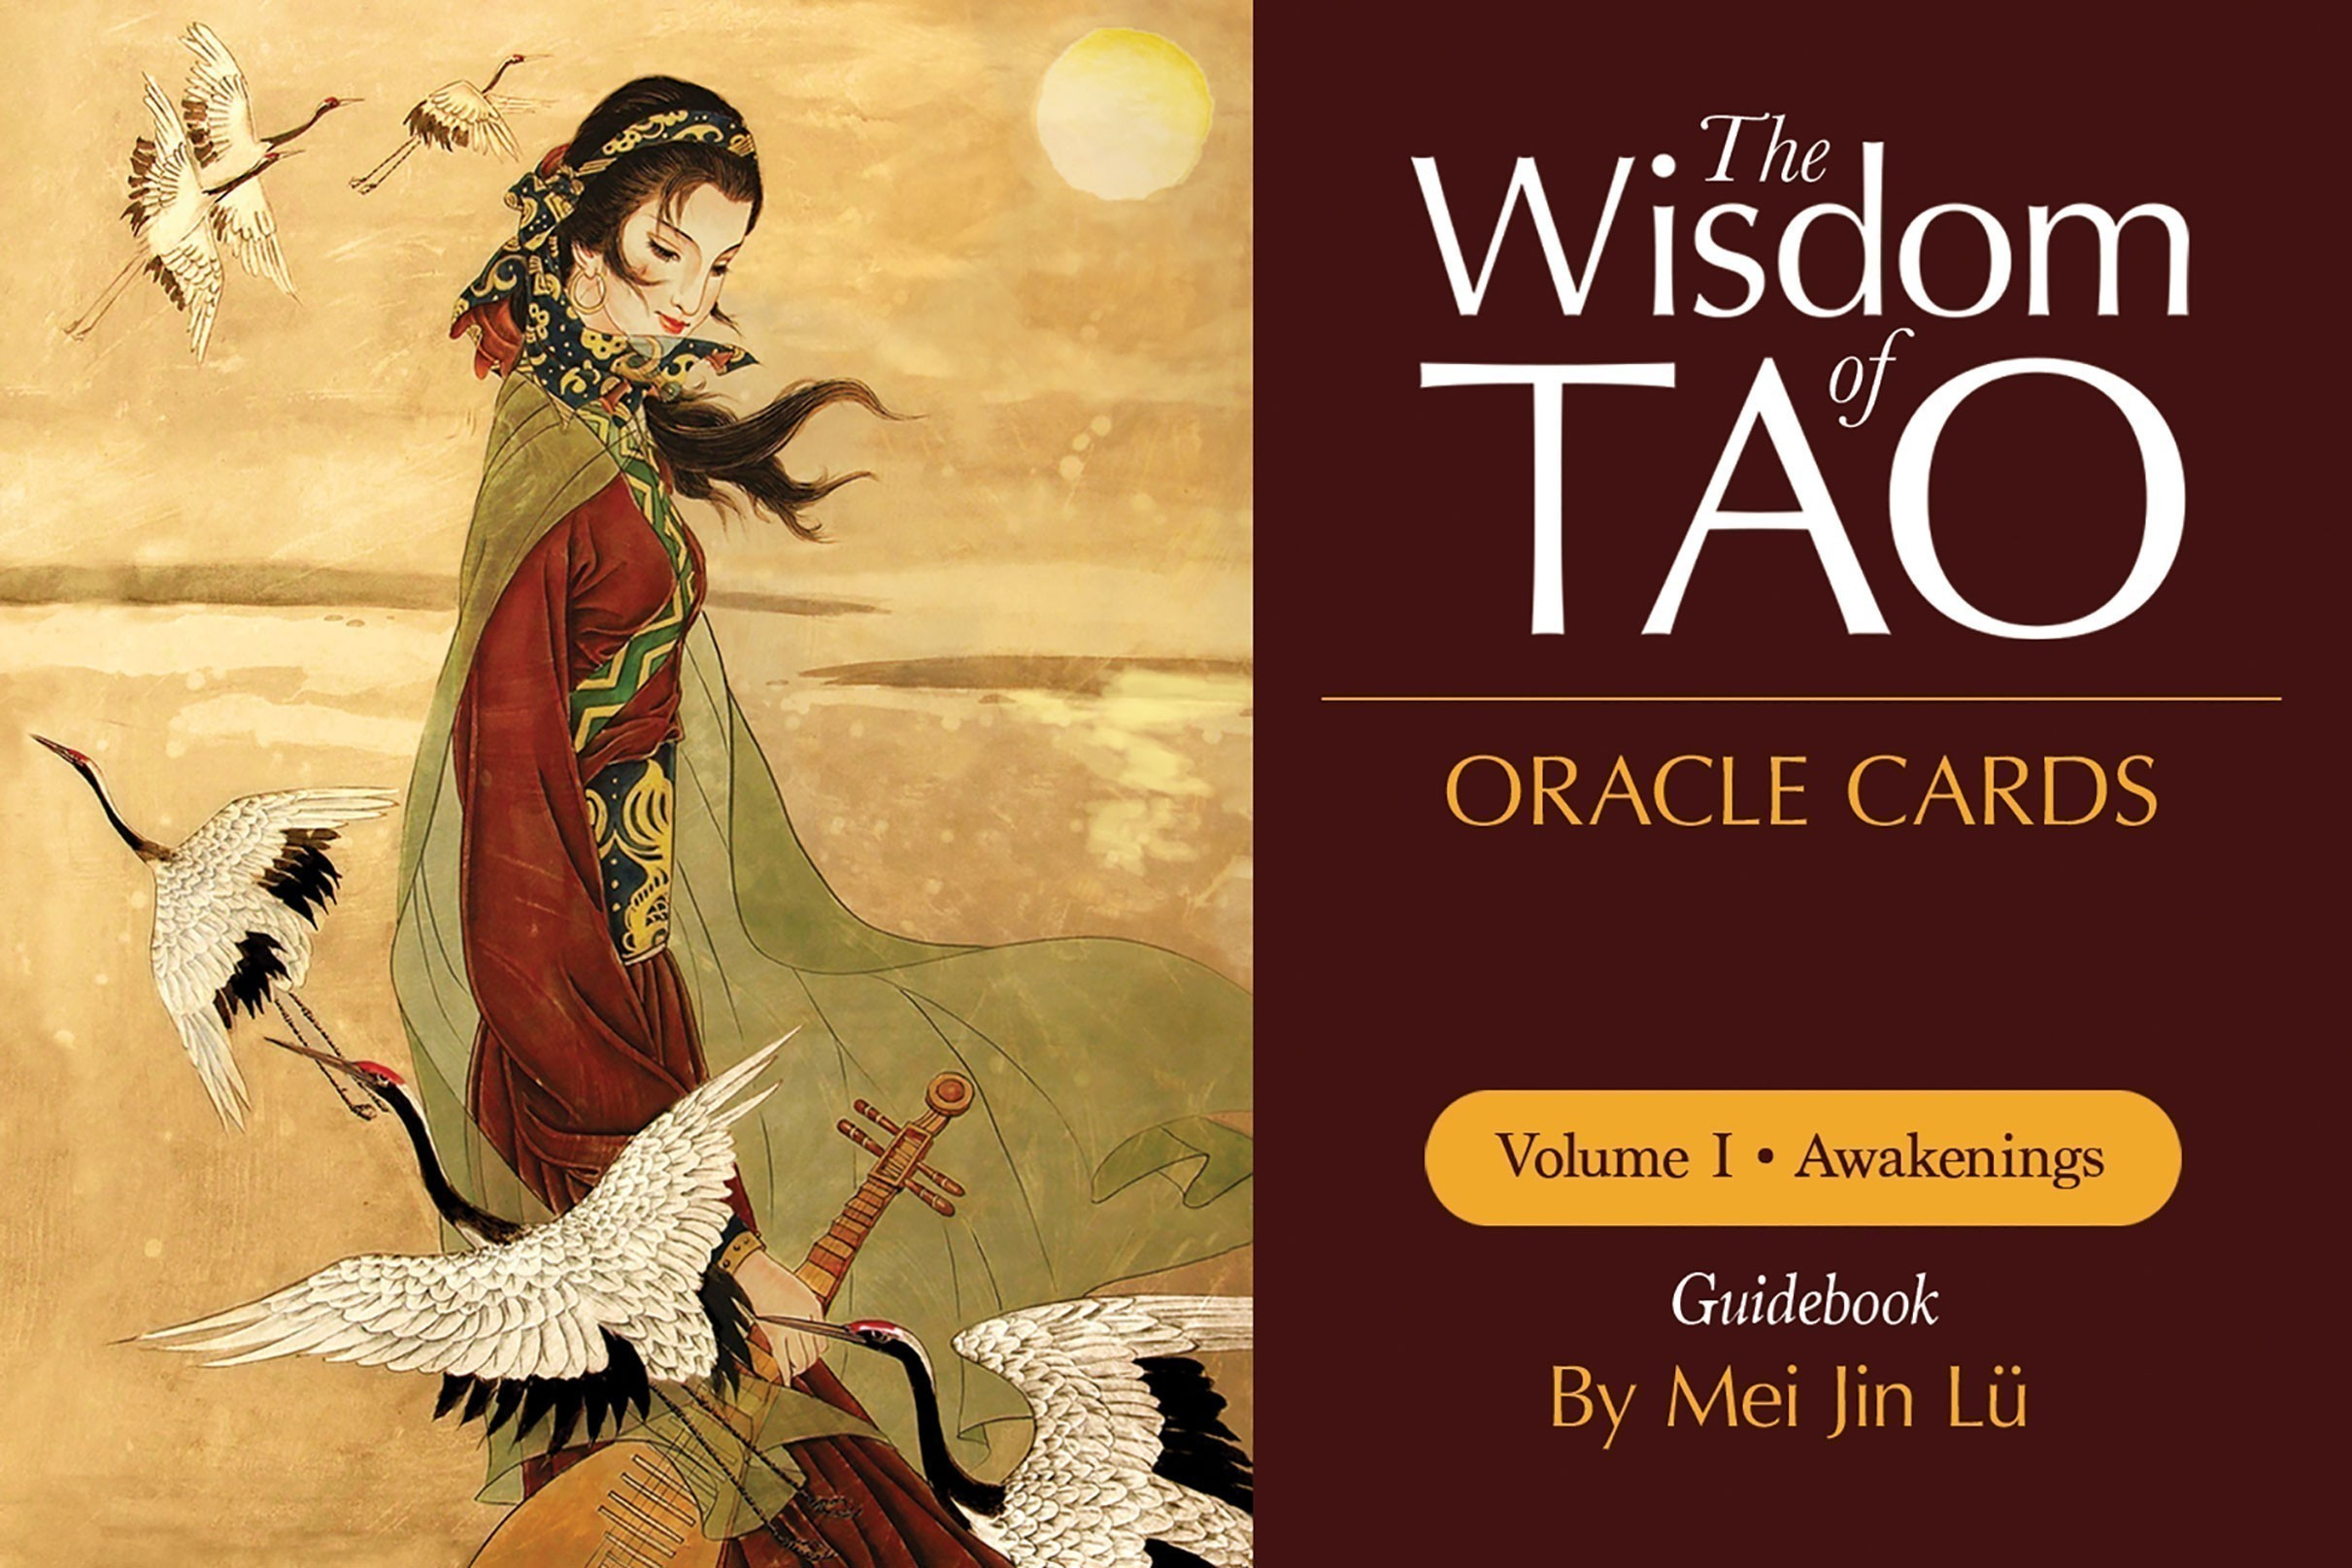 The Wisdom of Tao Oracle Cards Volume I • Awakenings